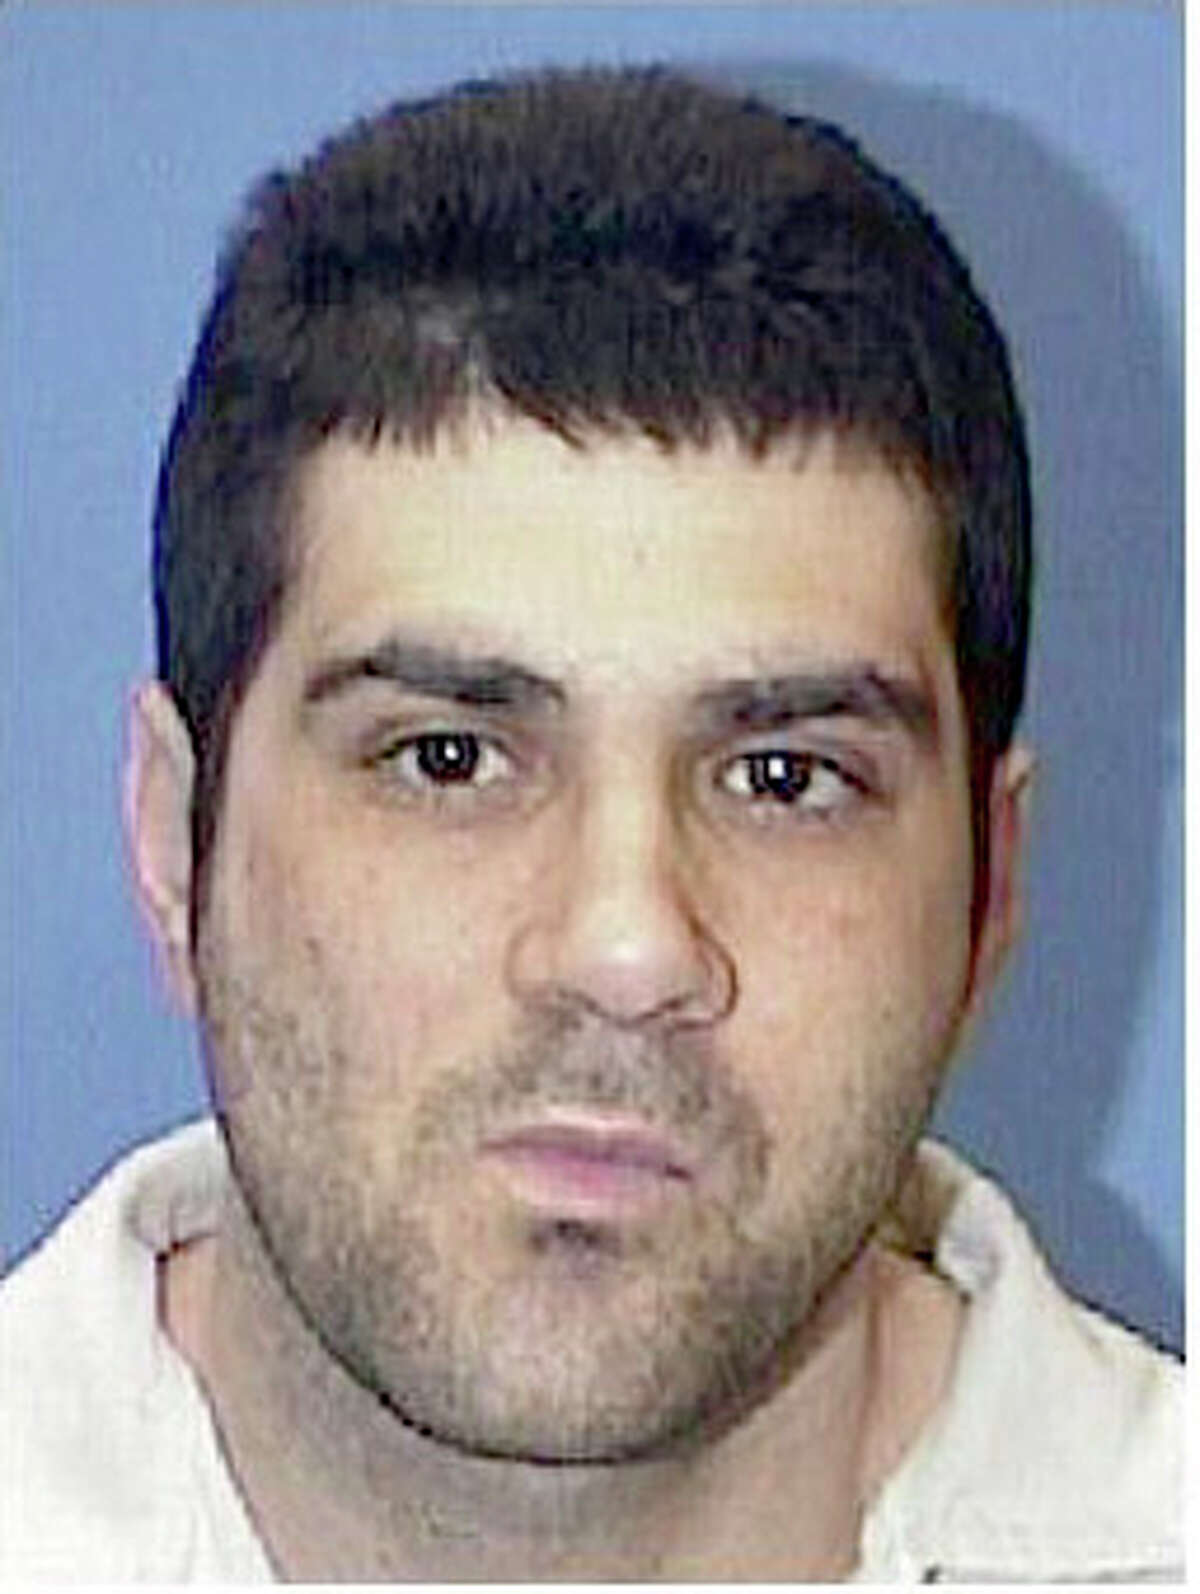 Cameron Todd Willingham: Tied to his children's deaths in 1991.